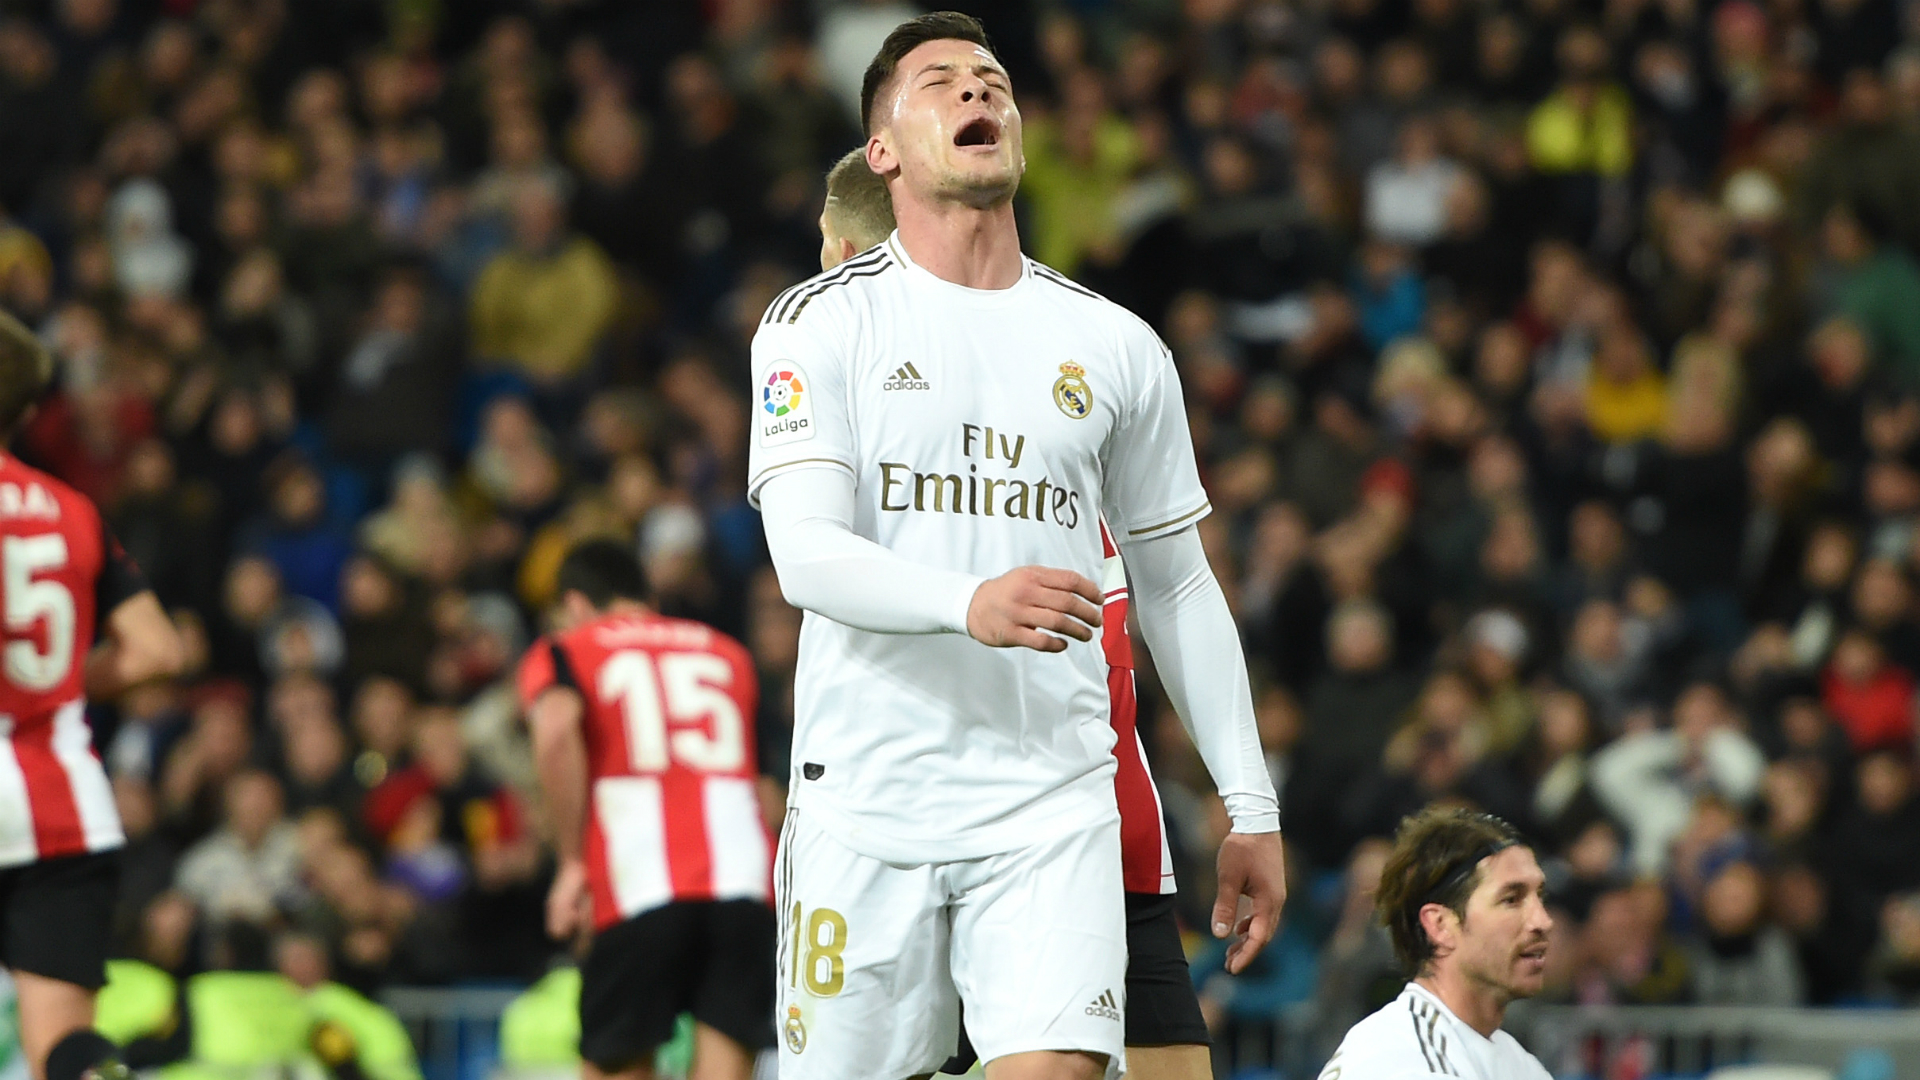 Jovic must be more professional if he wants to stay at Real Madrid – Ninkovic